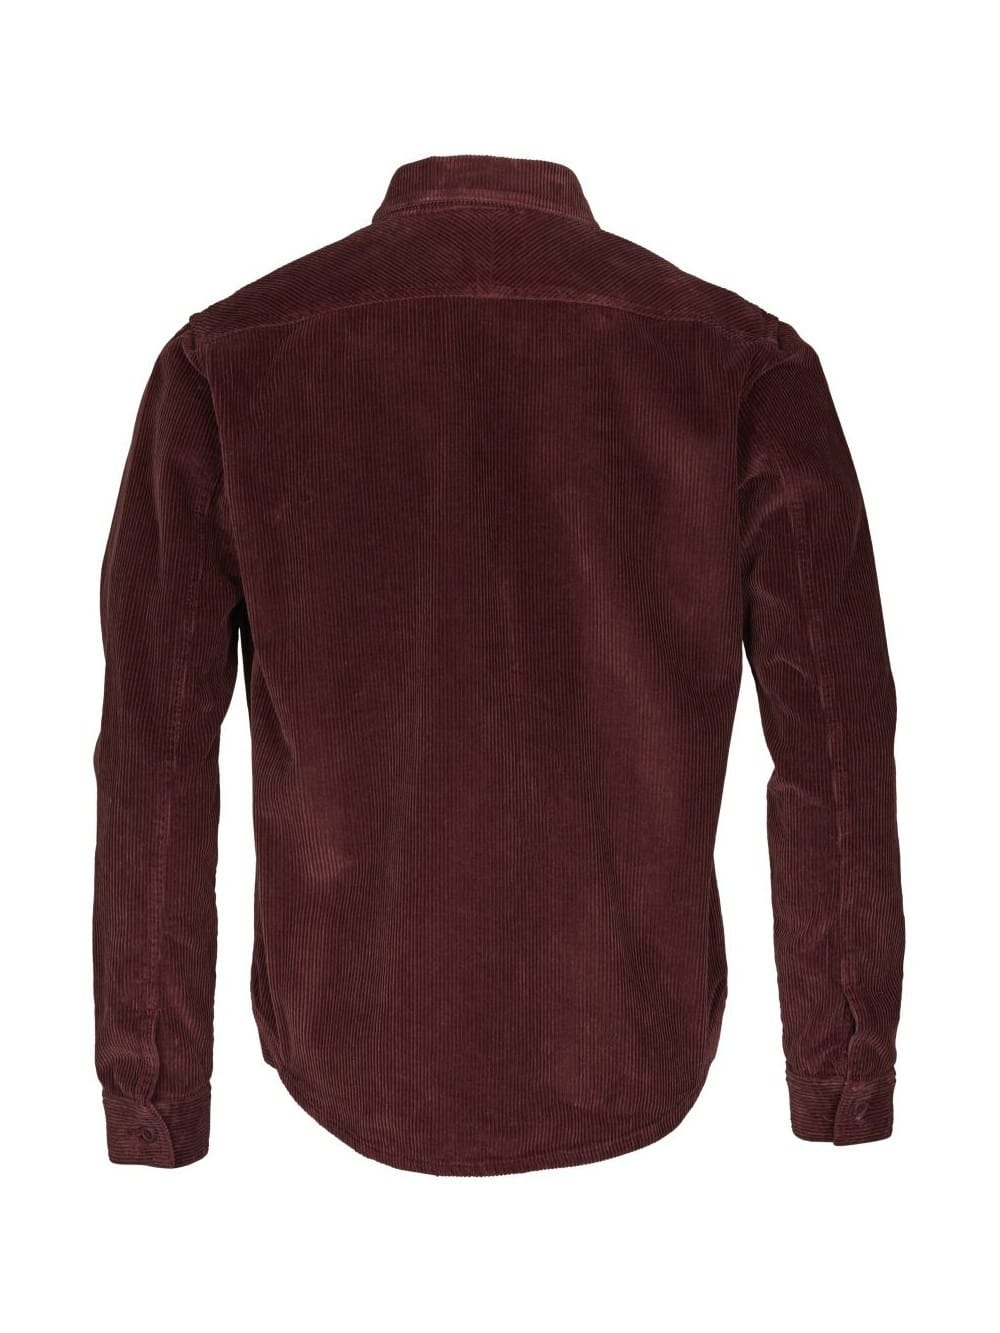 Garnet corduroy jacket with zip